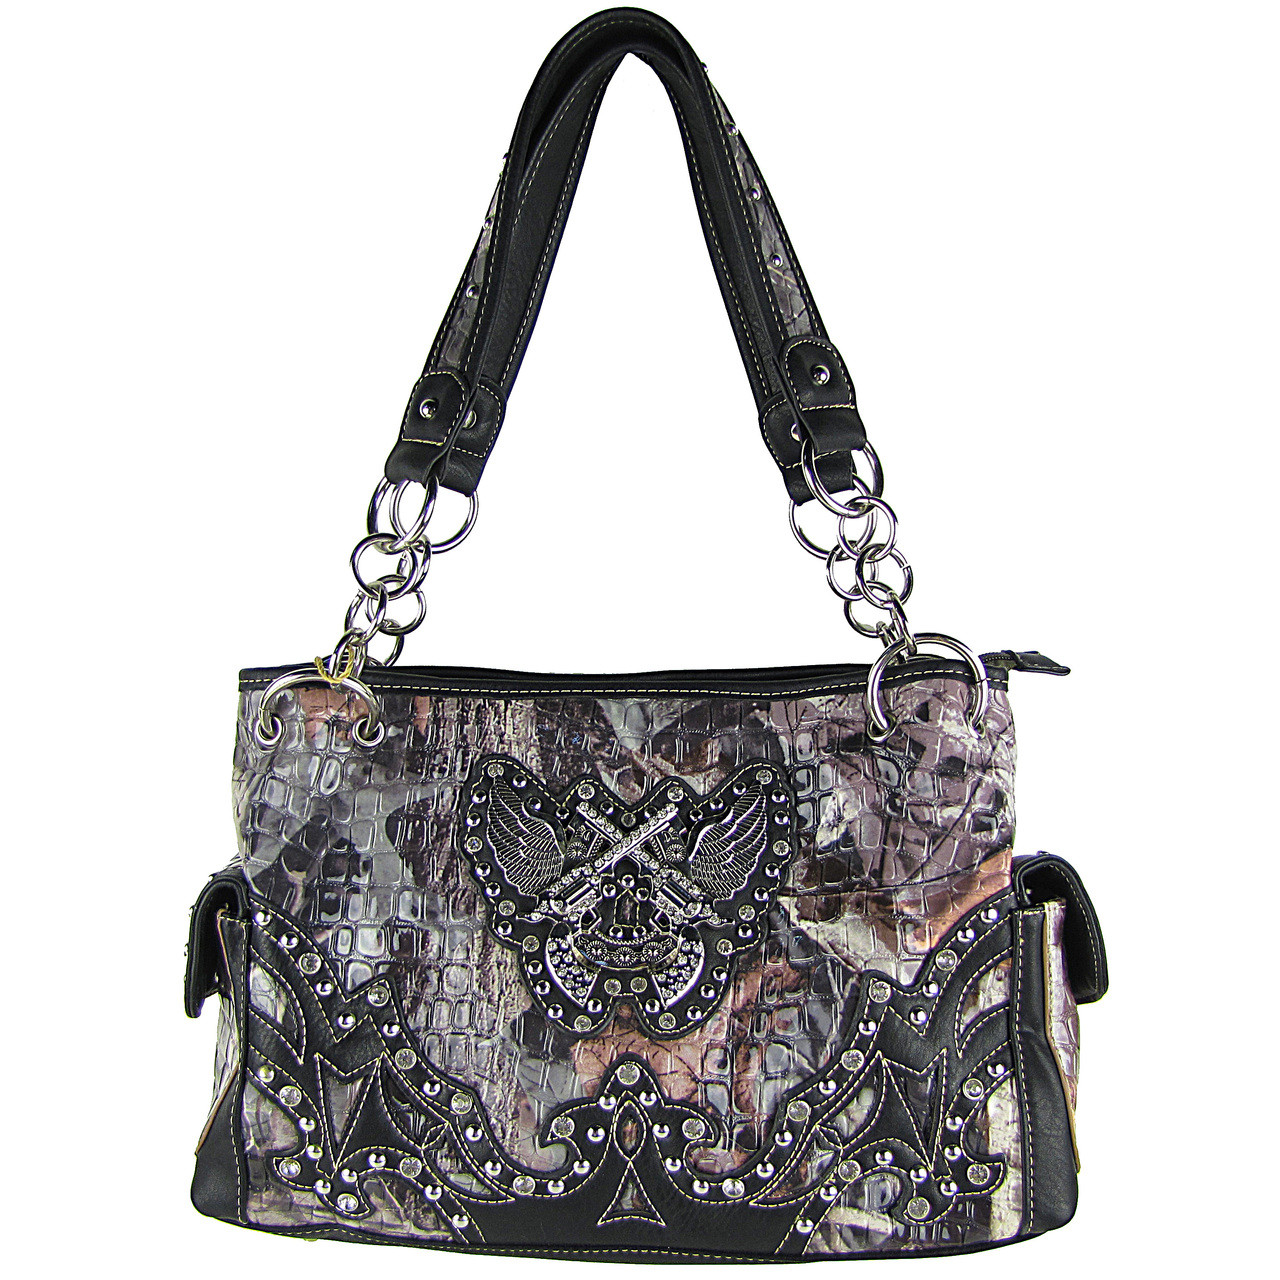 BLACK CAMO RHINESTONE HORSESHOE WITH WINGS AND PISTOLS LOOK SHOULDER HANDBAG HB1-HH405-10BLK